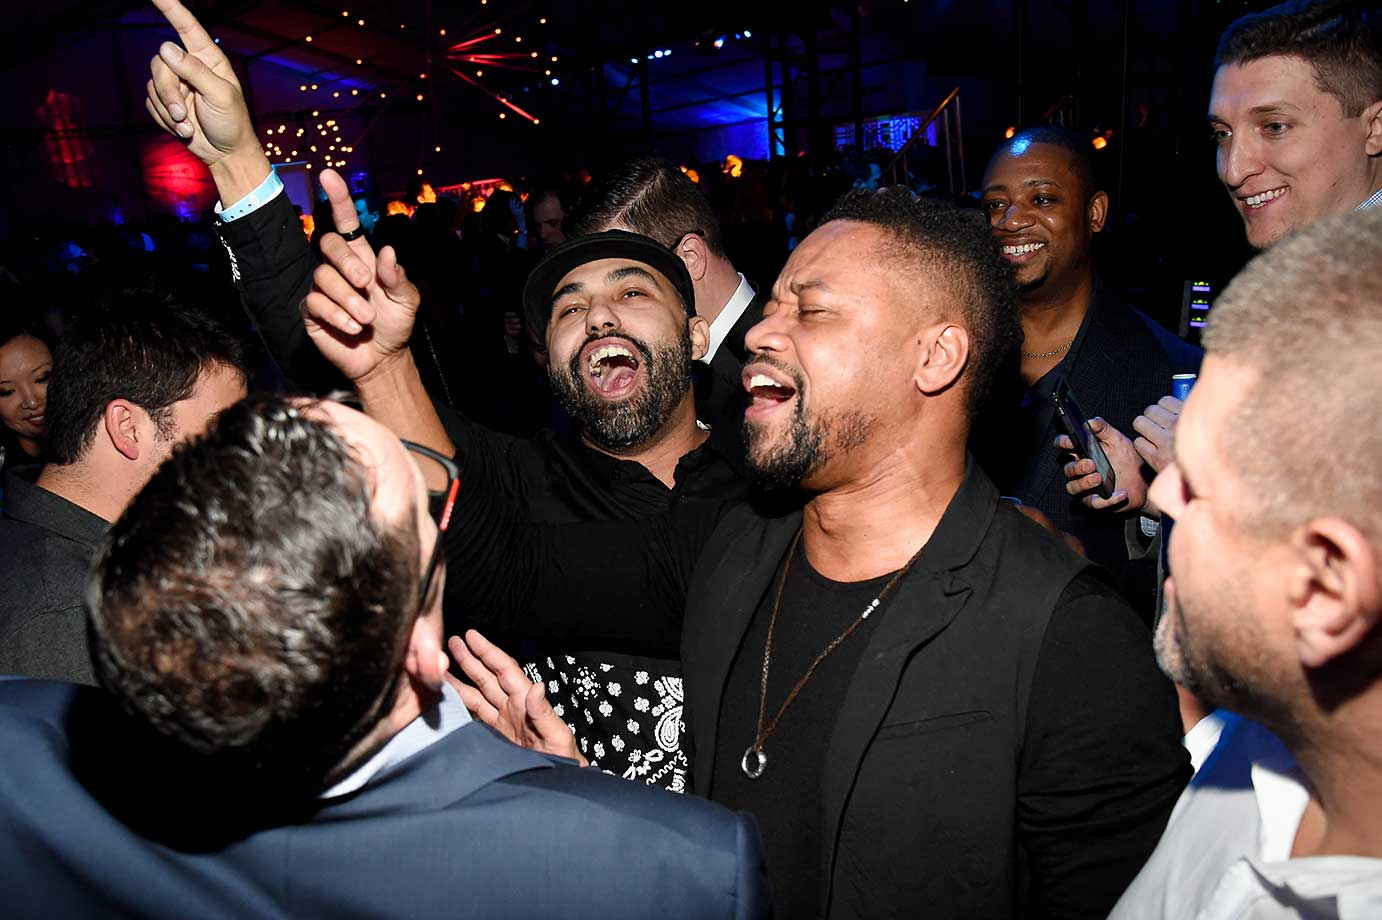 Cuba Gooding Jr. :: Playboy Party